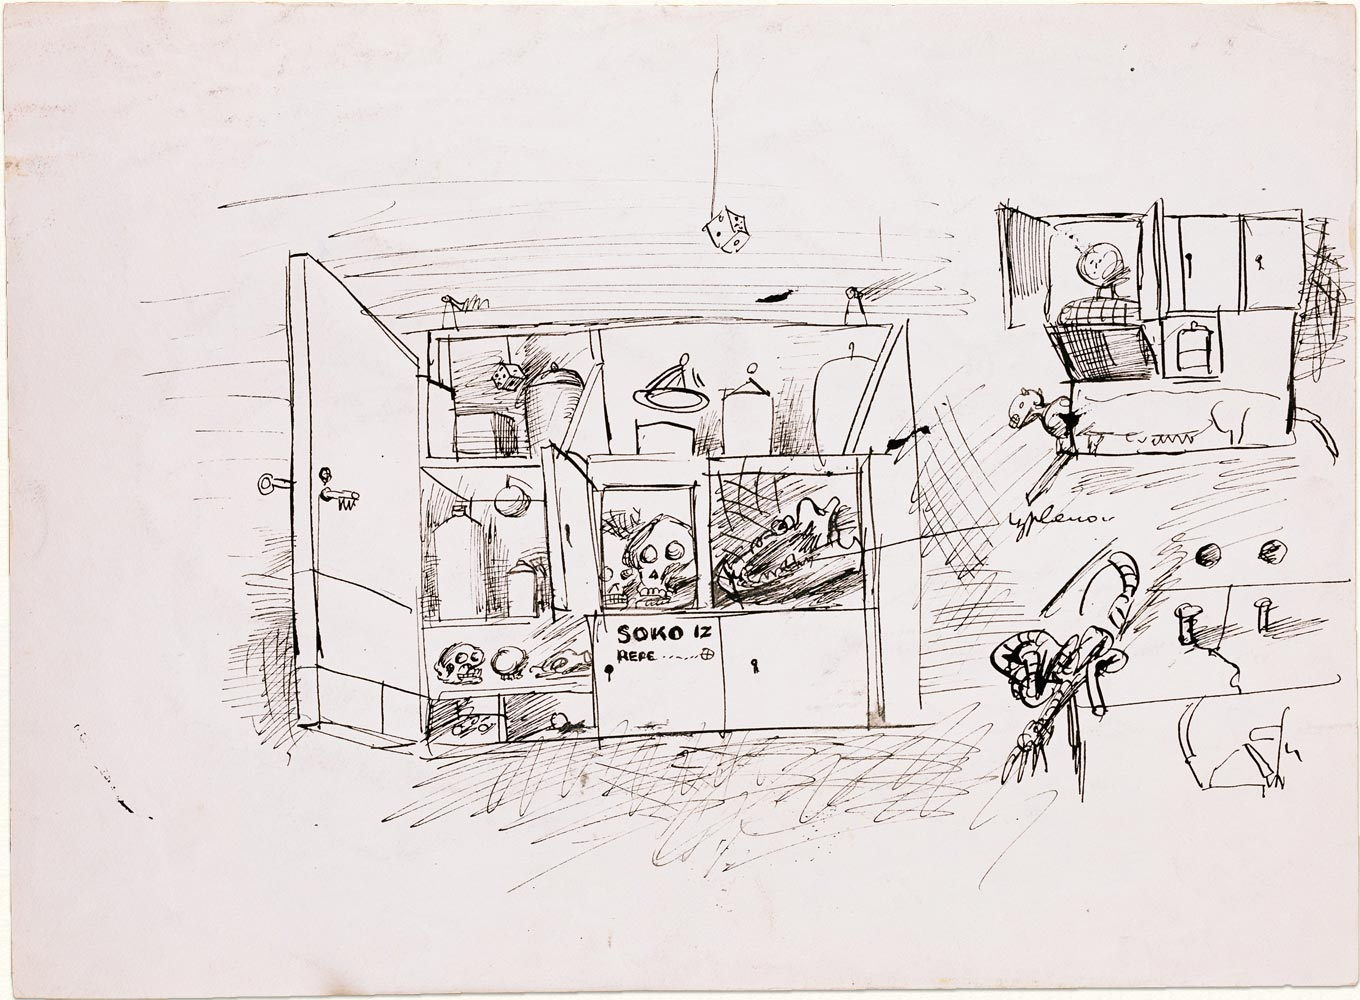 Dado's drawing: Study for The Cyclist, 1955